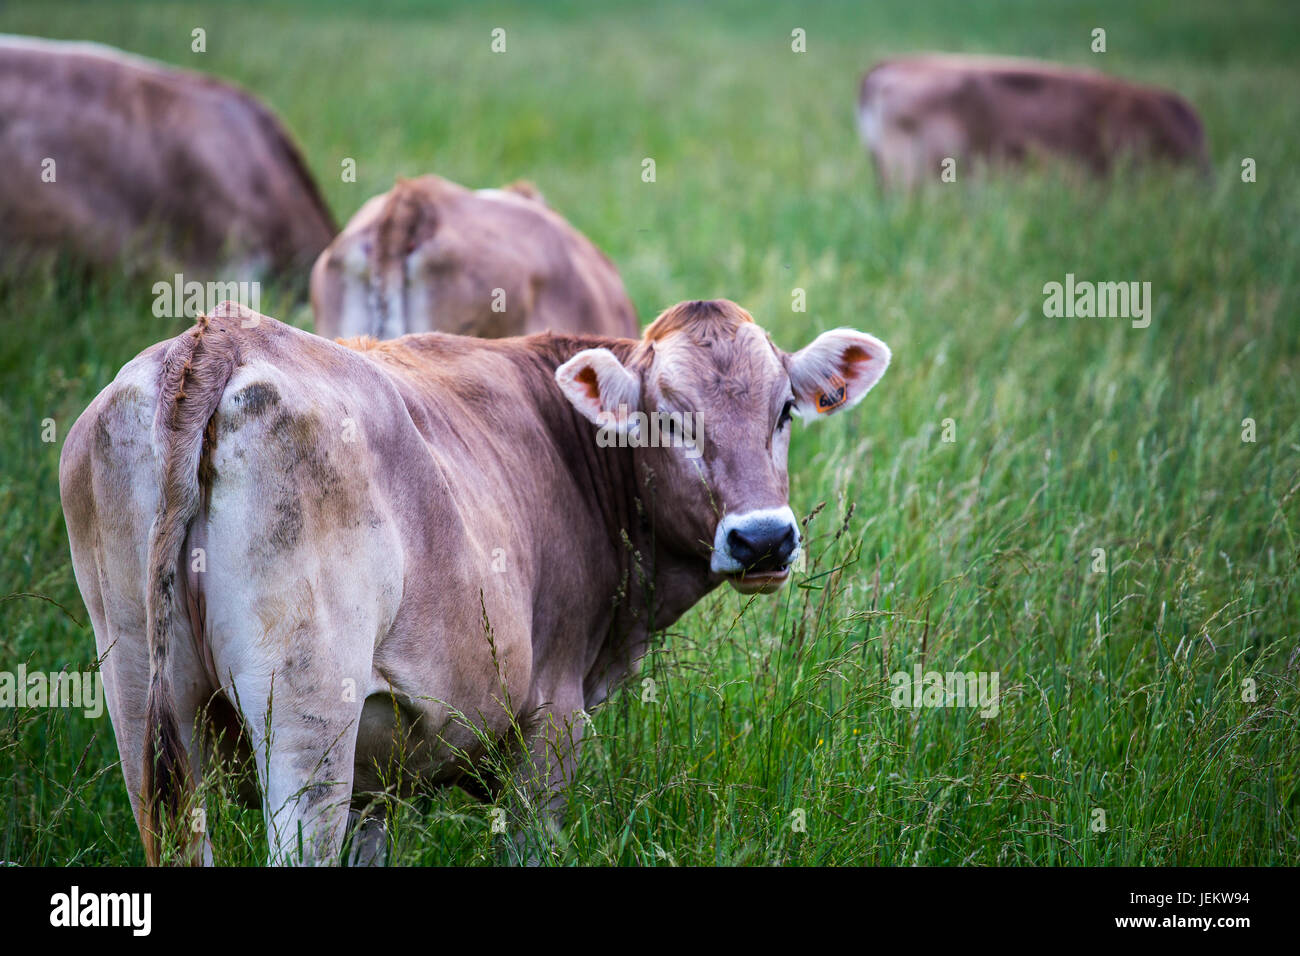 Cow (Swiss Braunvieh breed) standing on a green meadow with other cows grazing in the background. - Stock Image